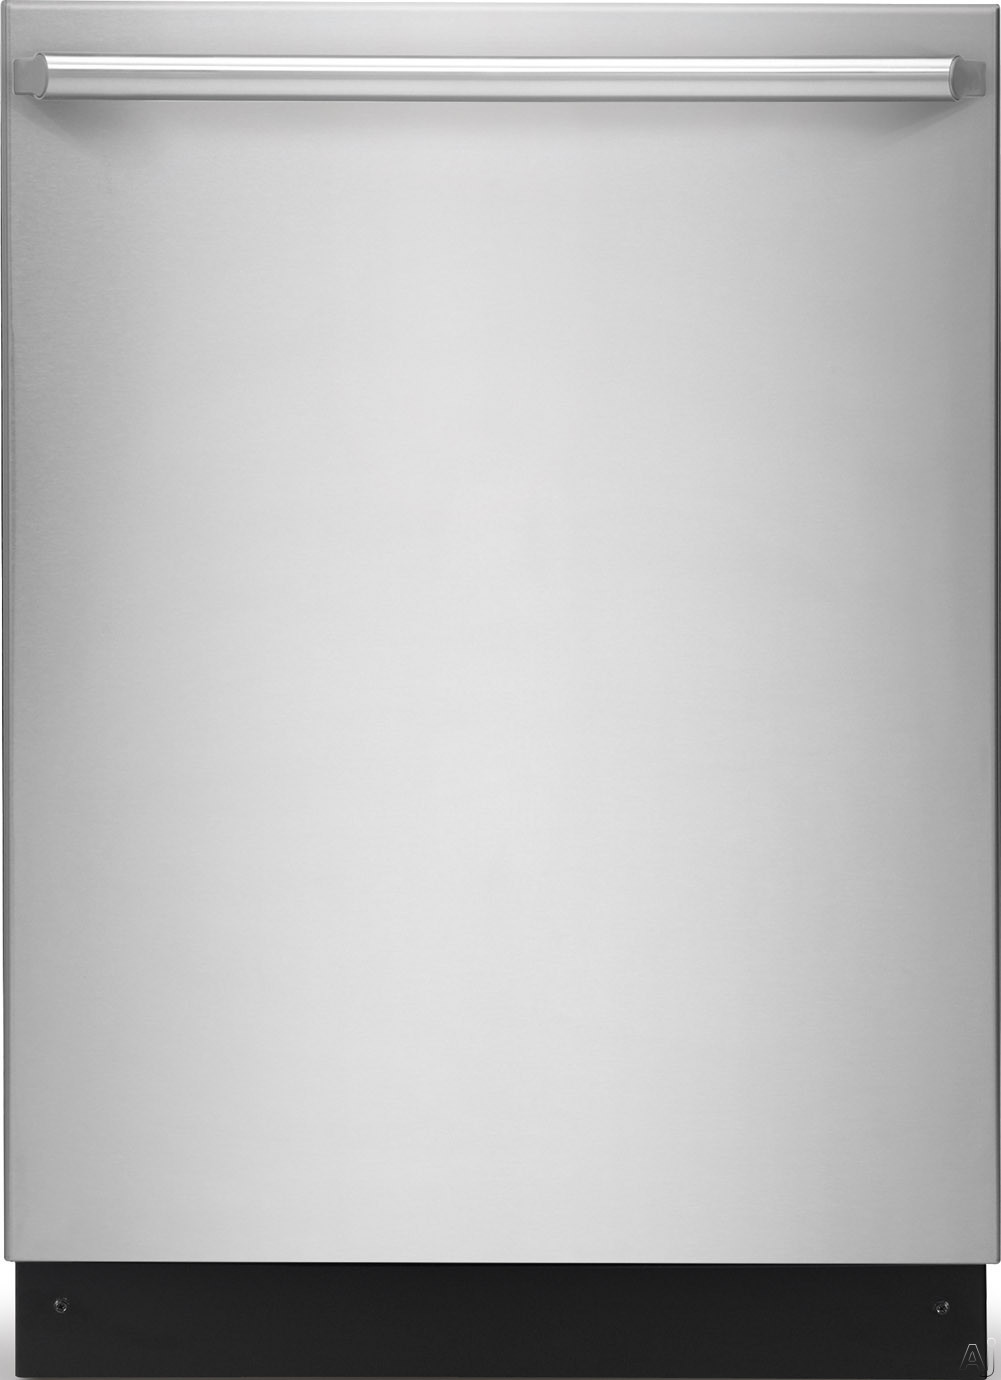 Electrolux IQ-Touch Series EI24ID30QS Fully Integrated Dishwasher with 14-Place Settings, 9 Wash Cycles, SatelliteSpray Arm, IQ Touch Controls, Leak Detection System, Luxury-Glide Racks and Energy Star Qualified: Stainless Steel EI24ID30QS